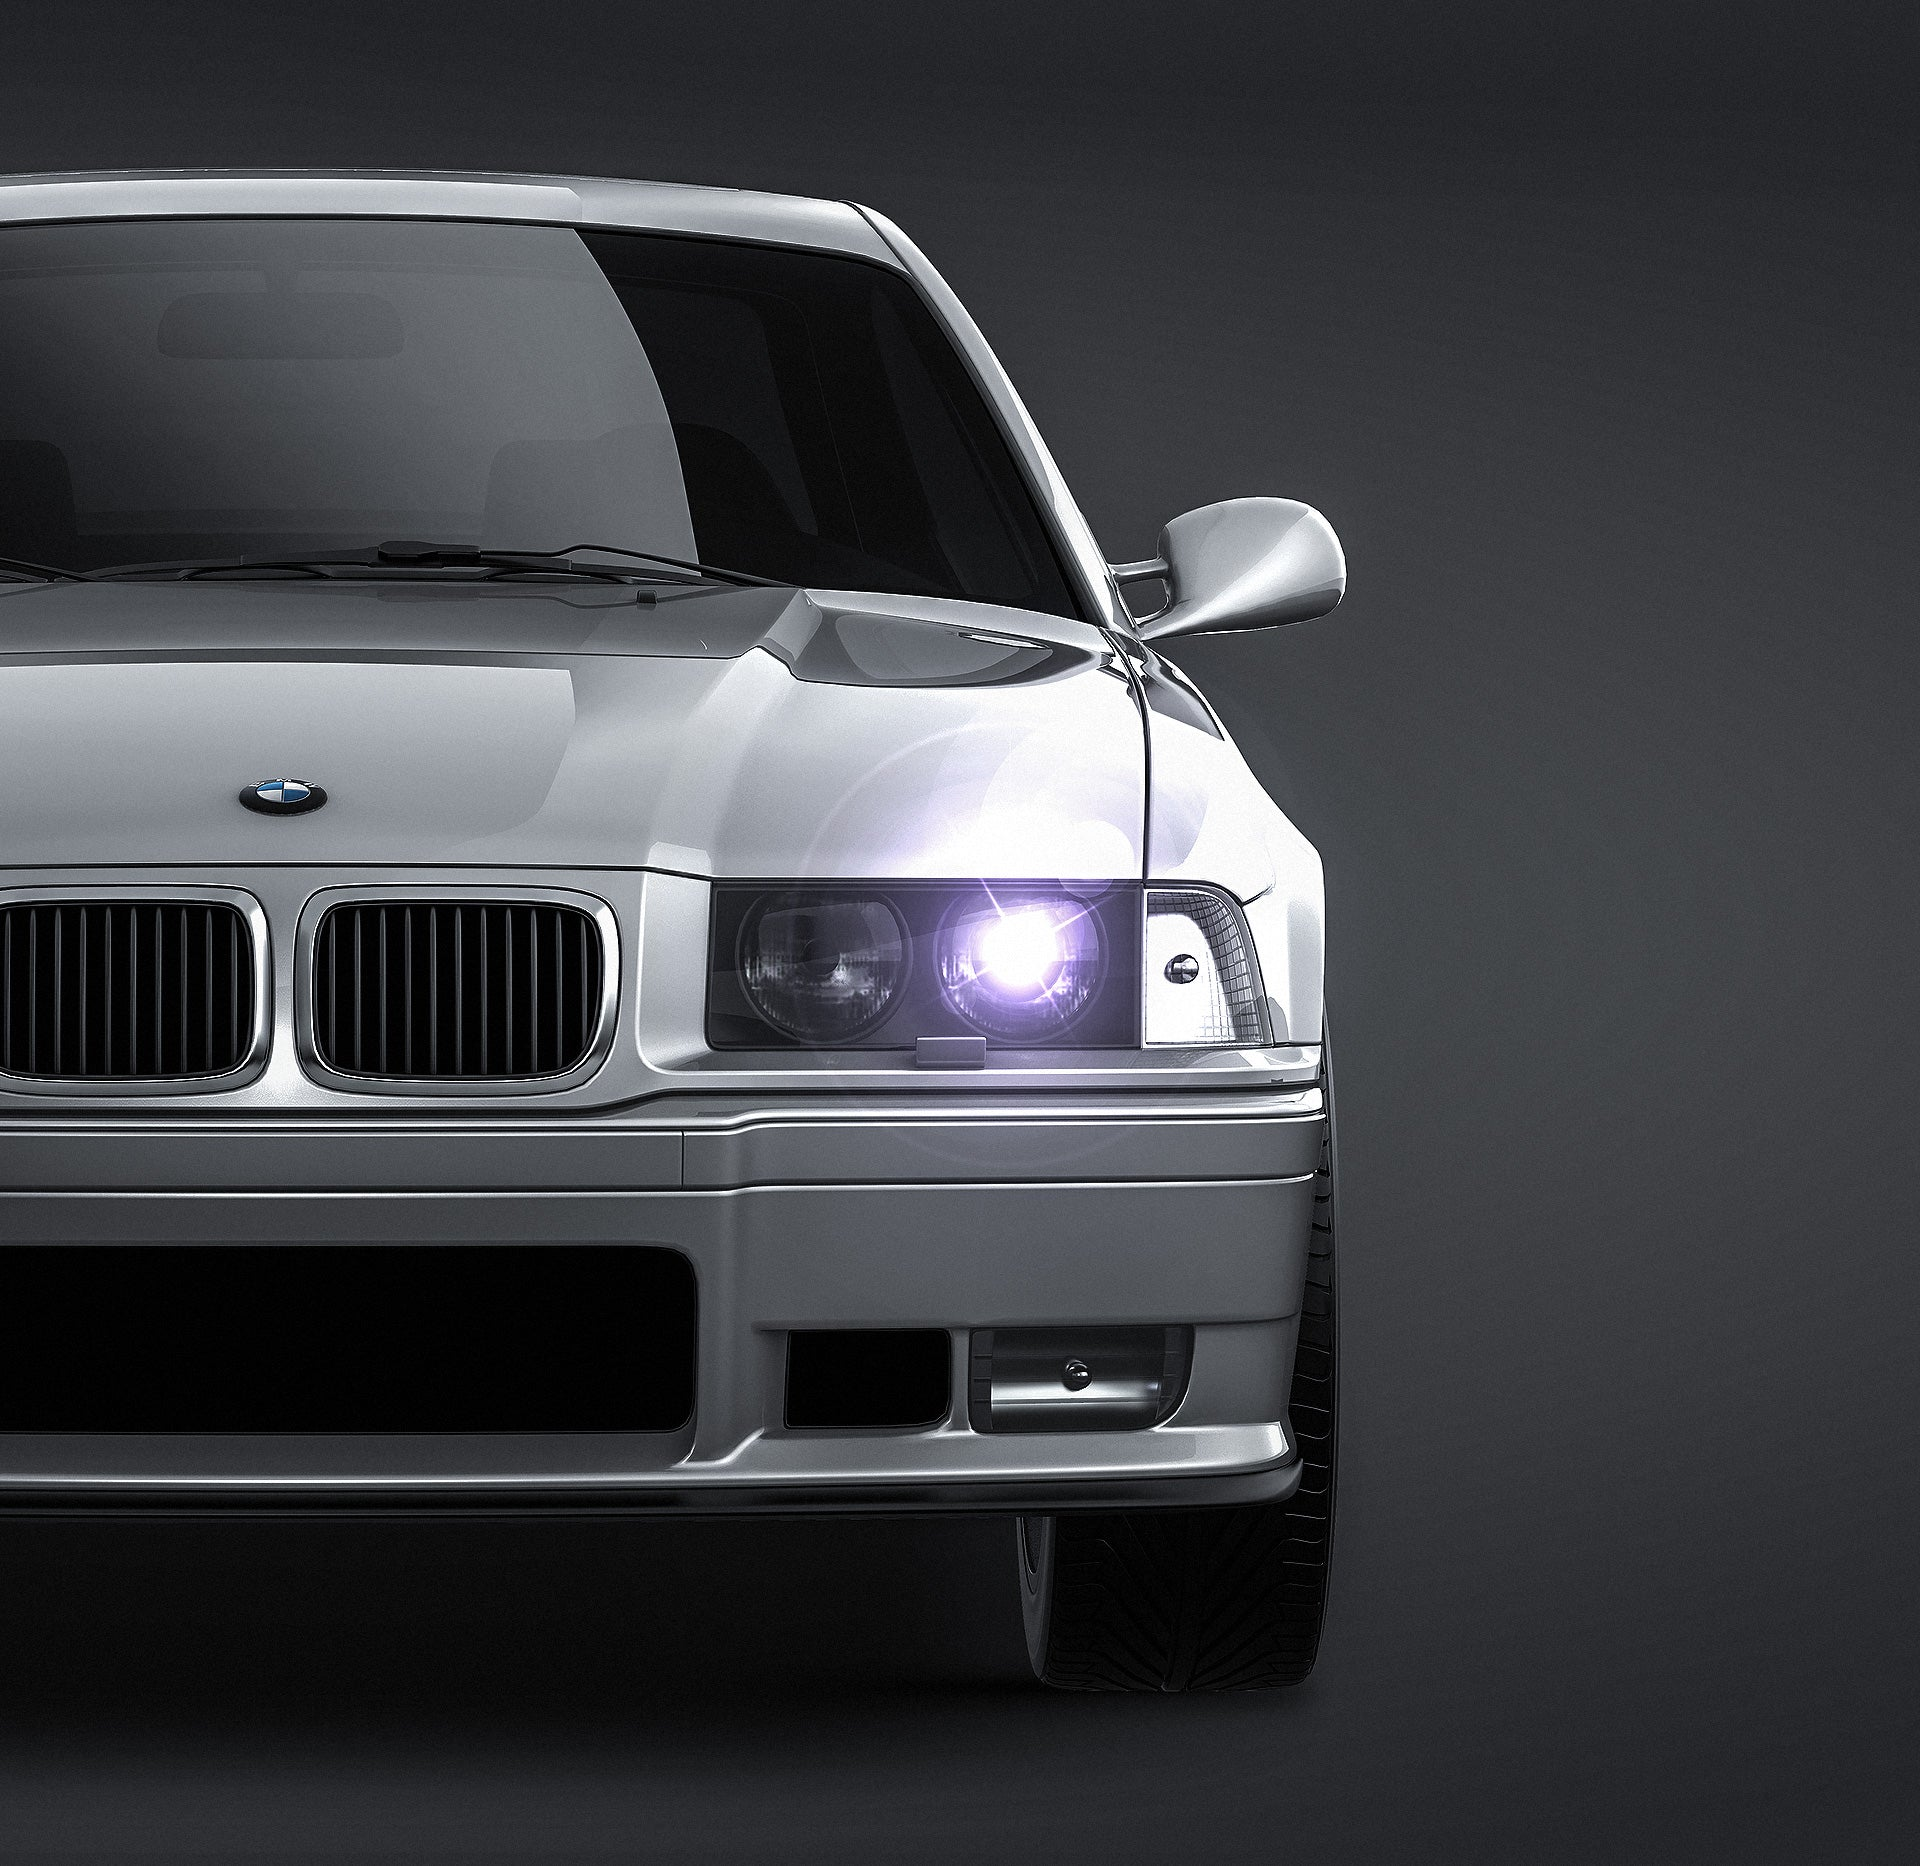 BMW E36 Coupe - all sides Car Mockup Template.psd